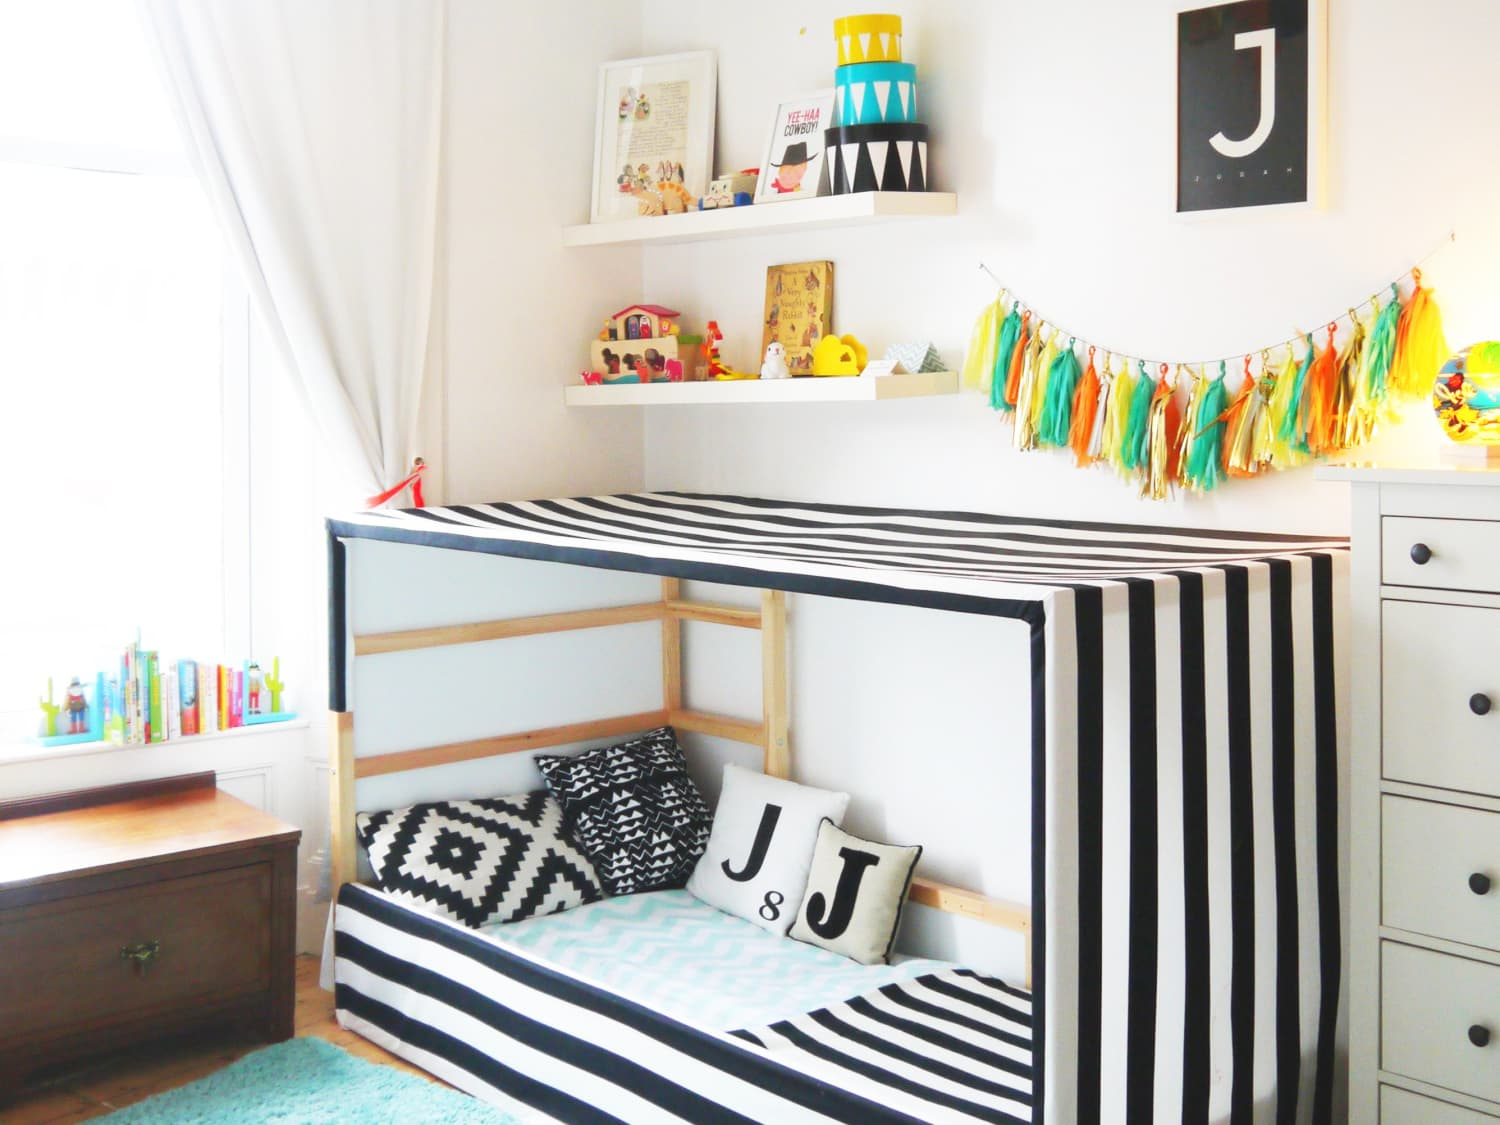 Ideas For Hacking Tweaking Customizing The Ikea Kura Bed Apartment Therapy